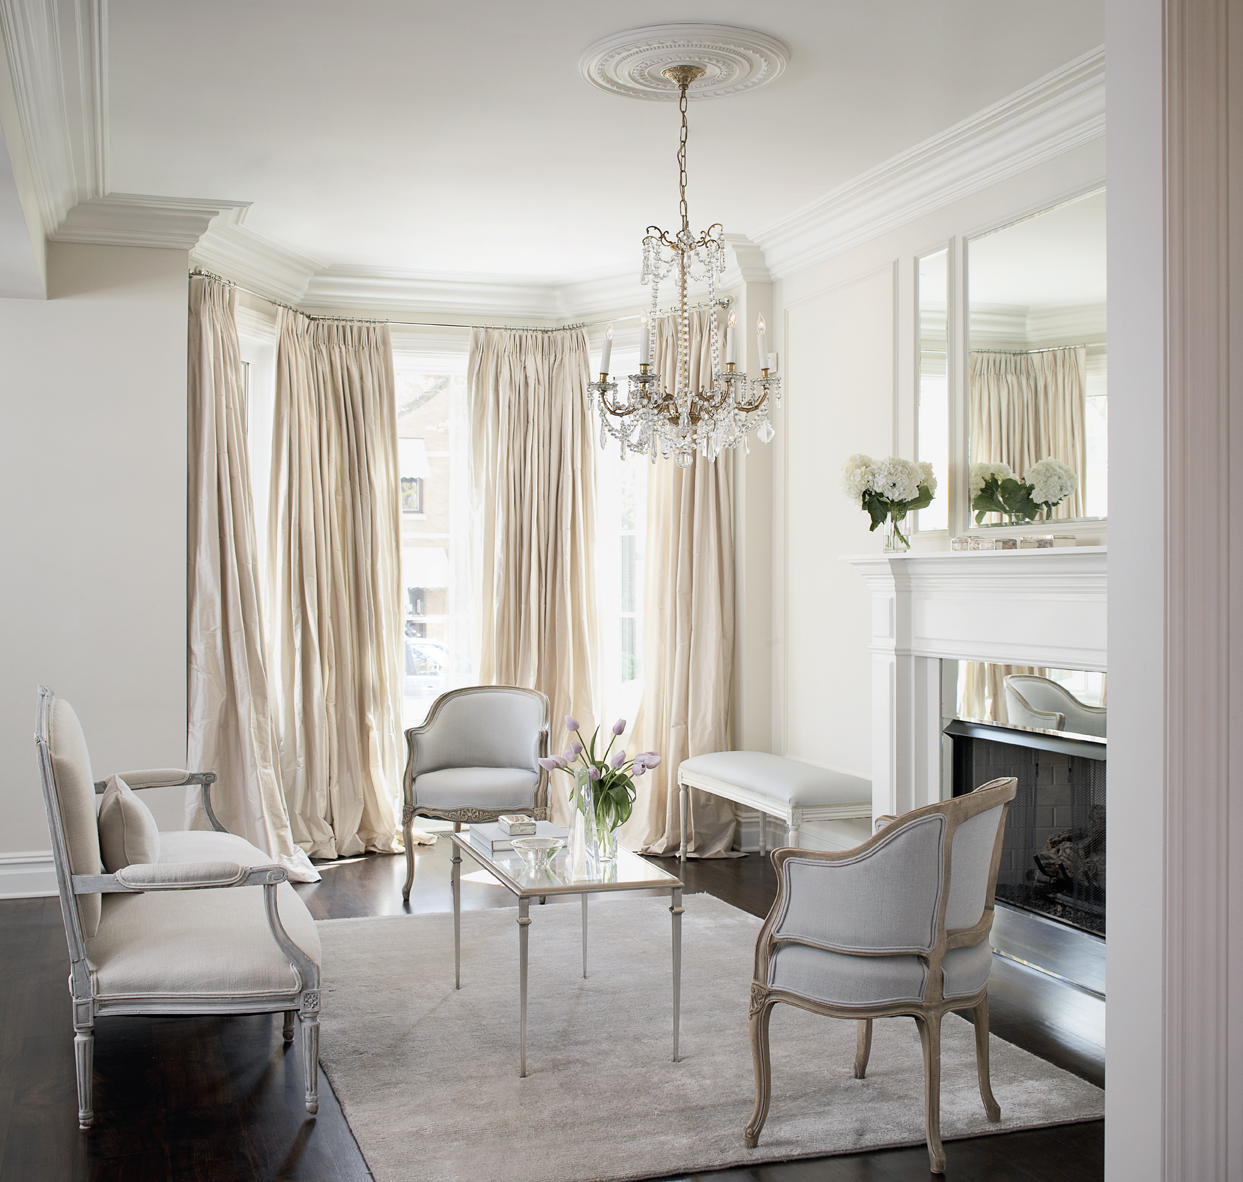 Parisian Style Home Decor 7 Décor Tips To Style Like A Parisian  Bright And Beautiful